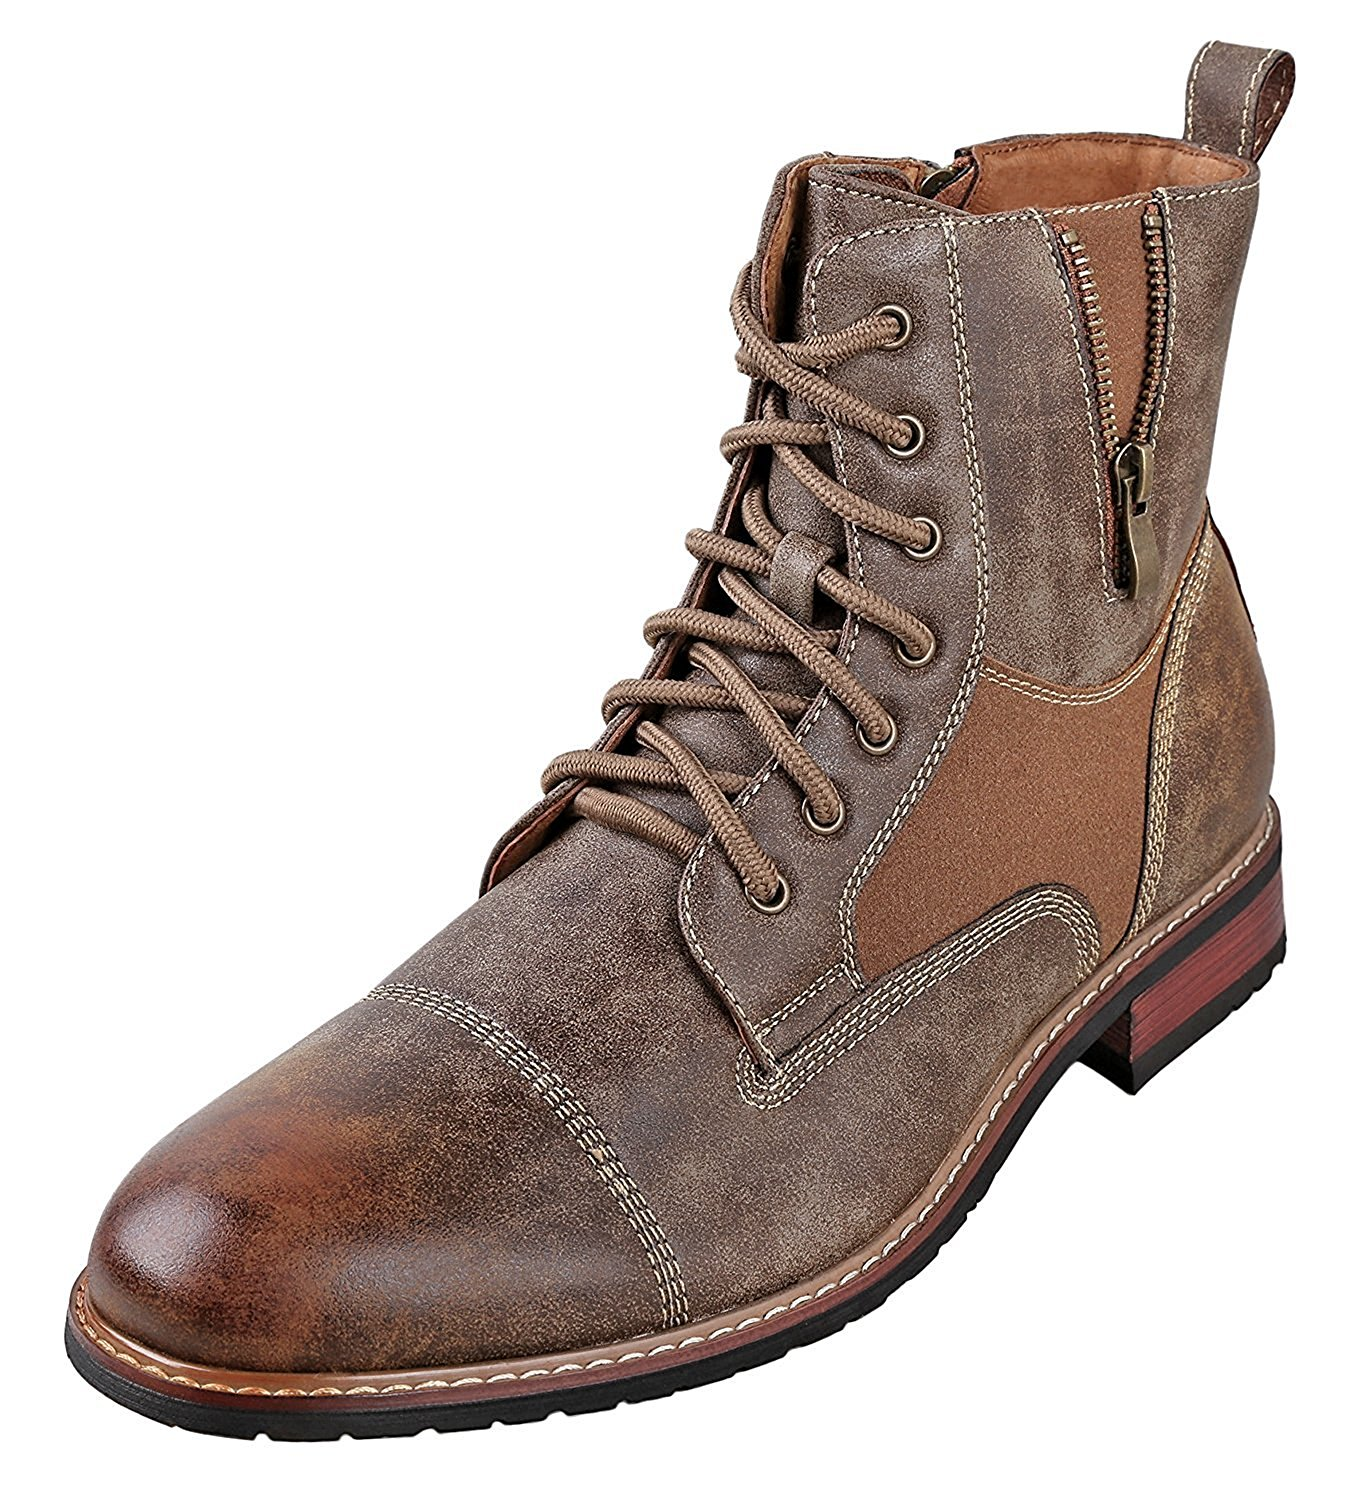 850a87cf5b Get Quotations · Ferro Aldo Andy Mens Ankle Boots | Combat | Lace Up |  Fashion | Casual